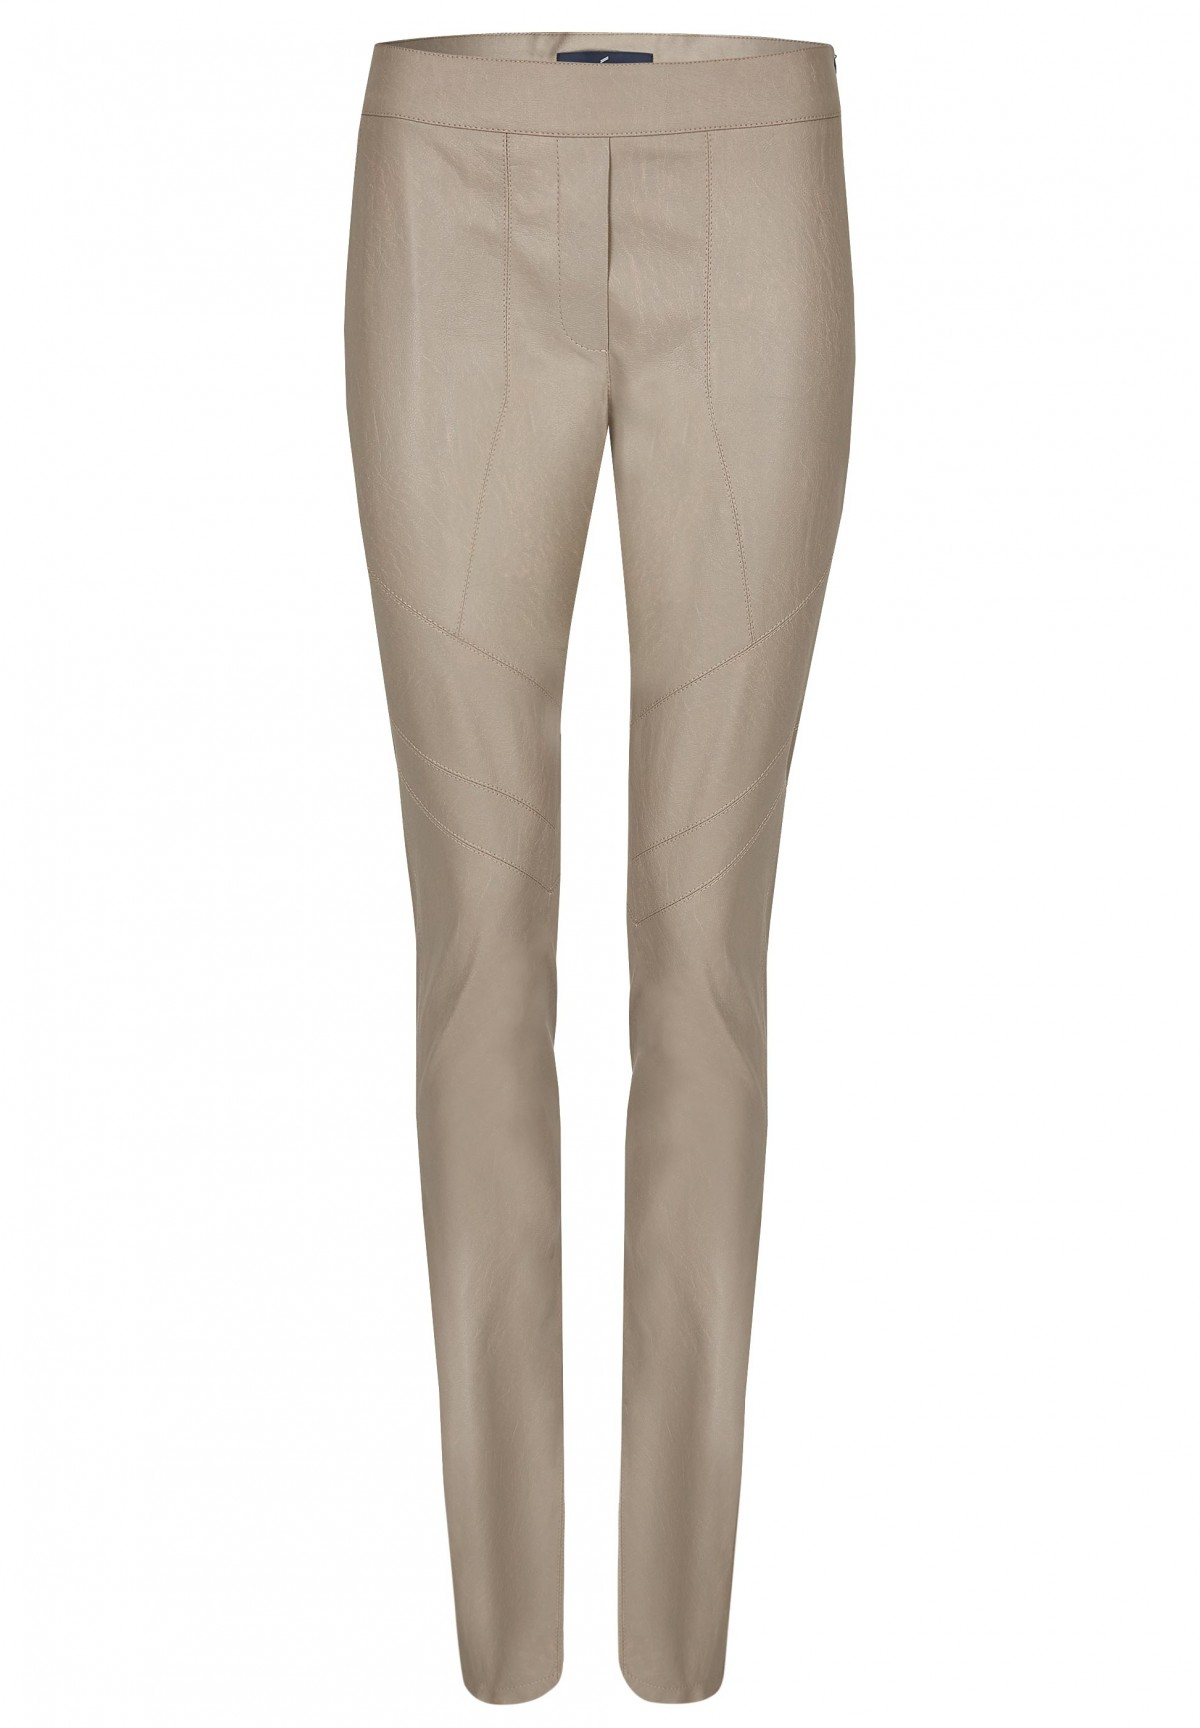 Pantalon leggings strech /